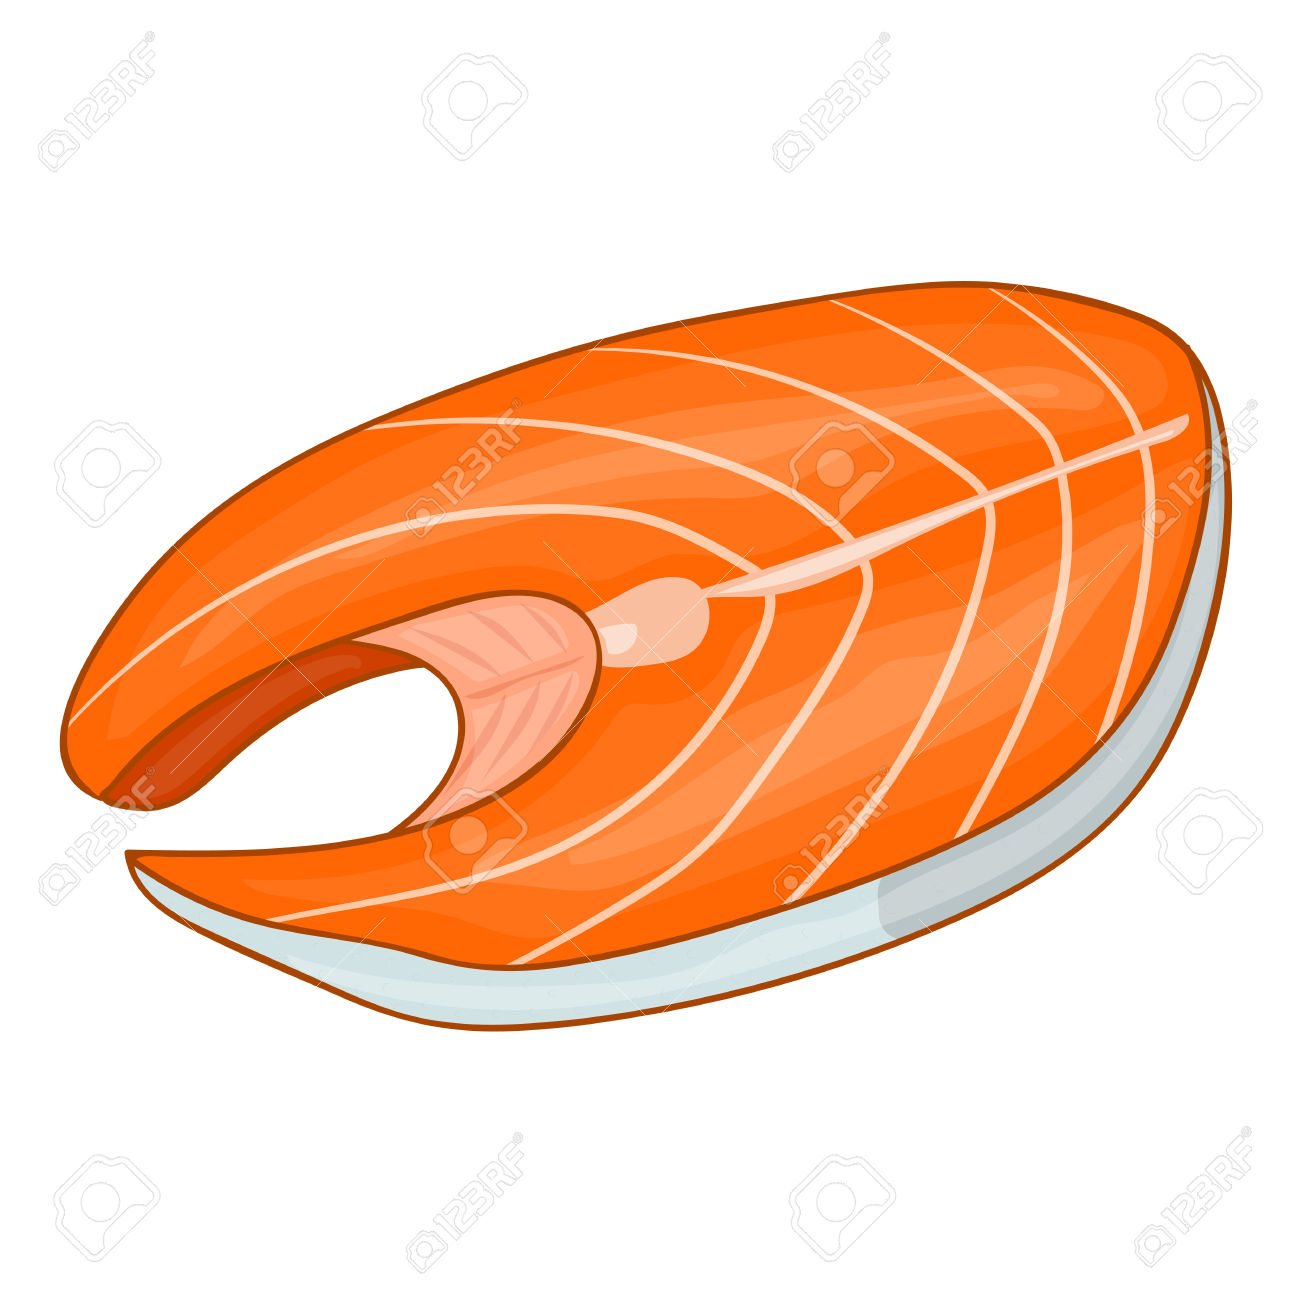 beef clipart fish meat #30443883